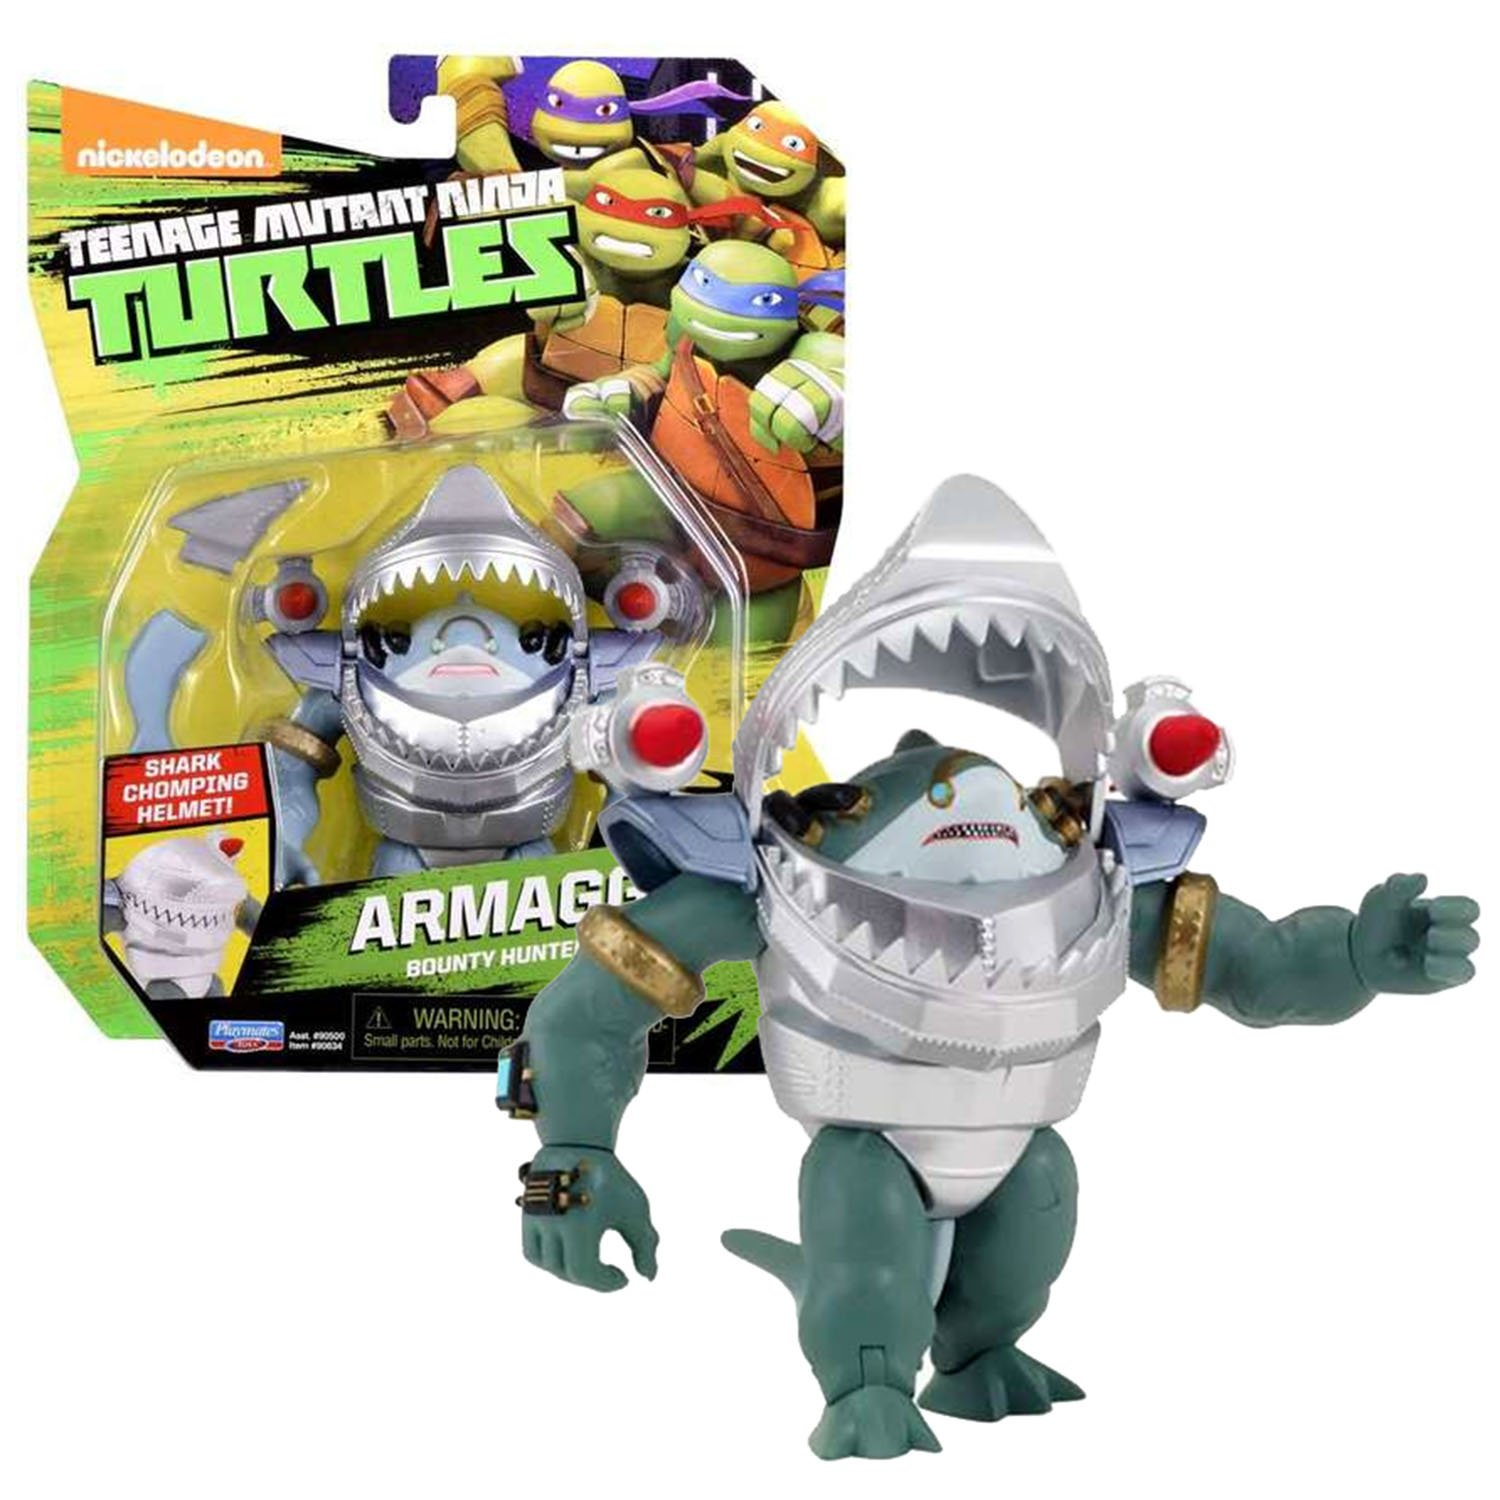 Playmates Year 2016 Nickelodeon Teenage Mutant Ninja Turtles 4 Inch Tall Action Figure - Bounty Hunter Space Shark ARMAGGON with Removable Tail & Fin